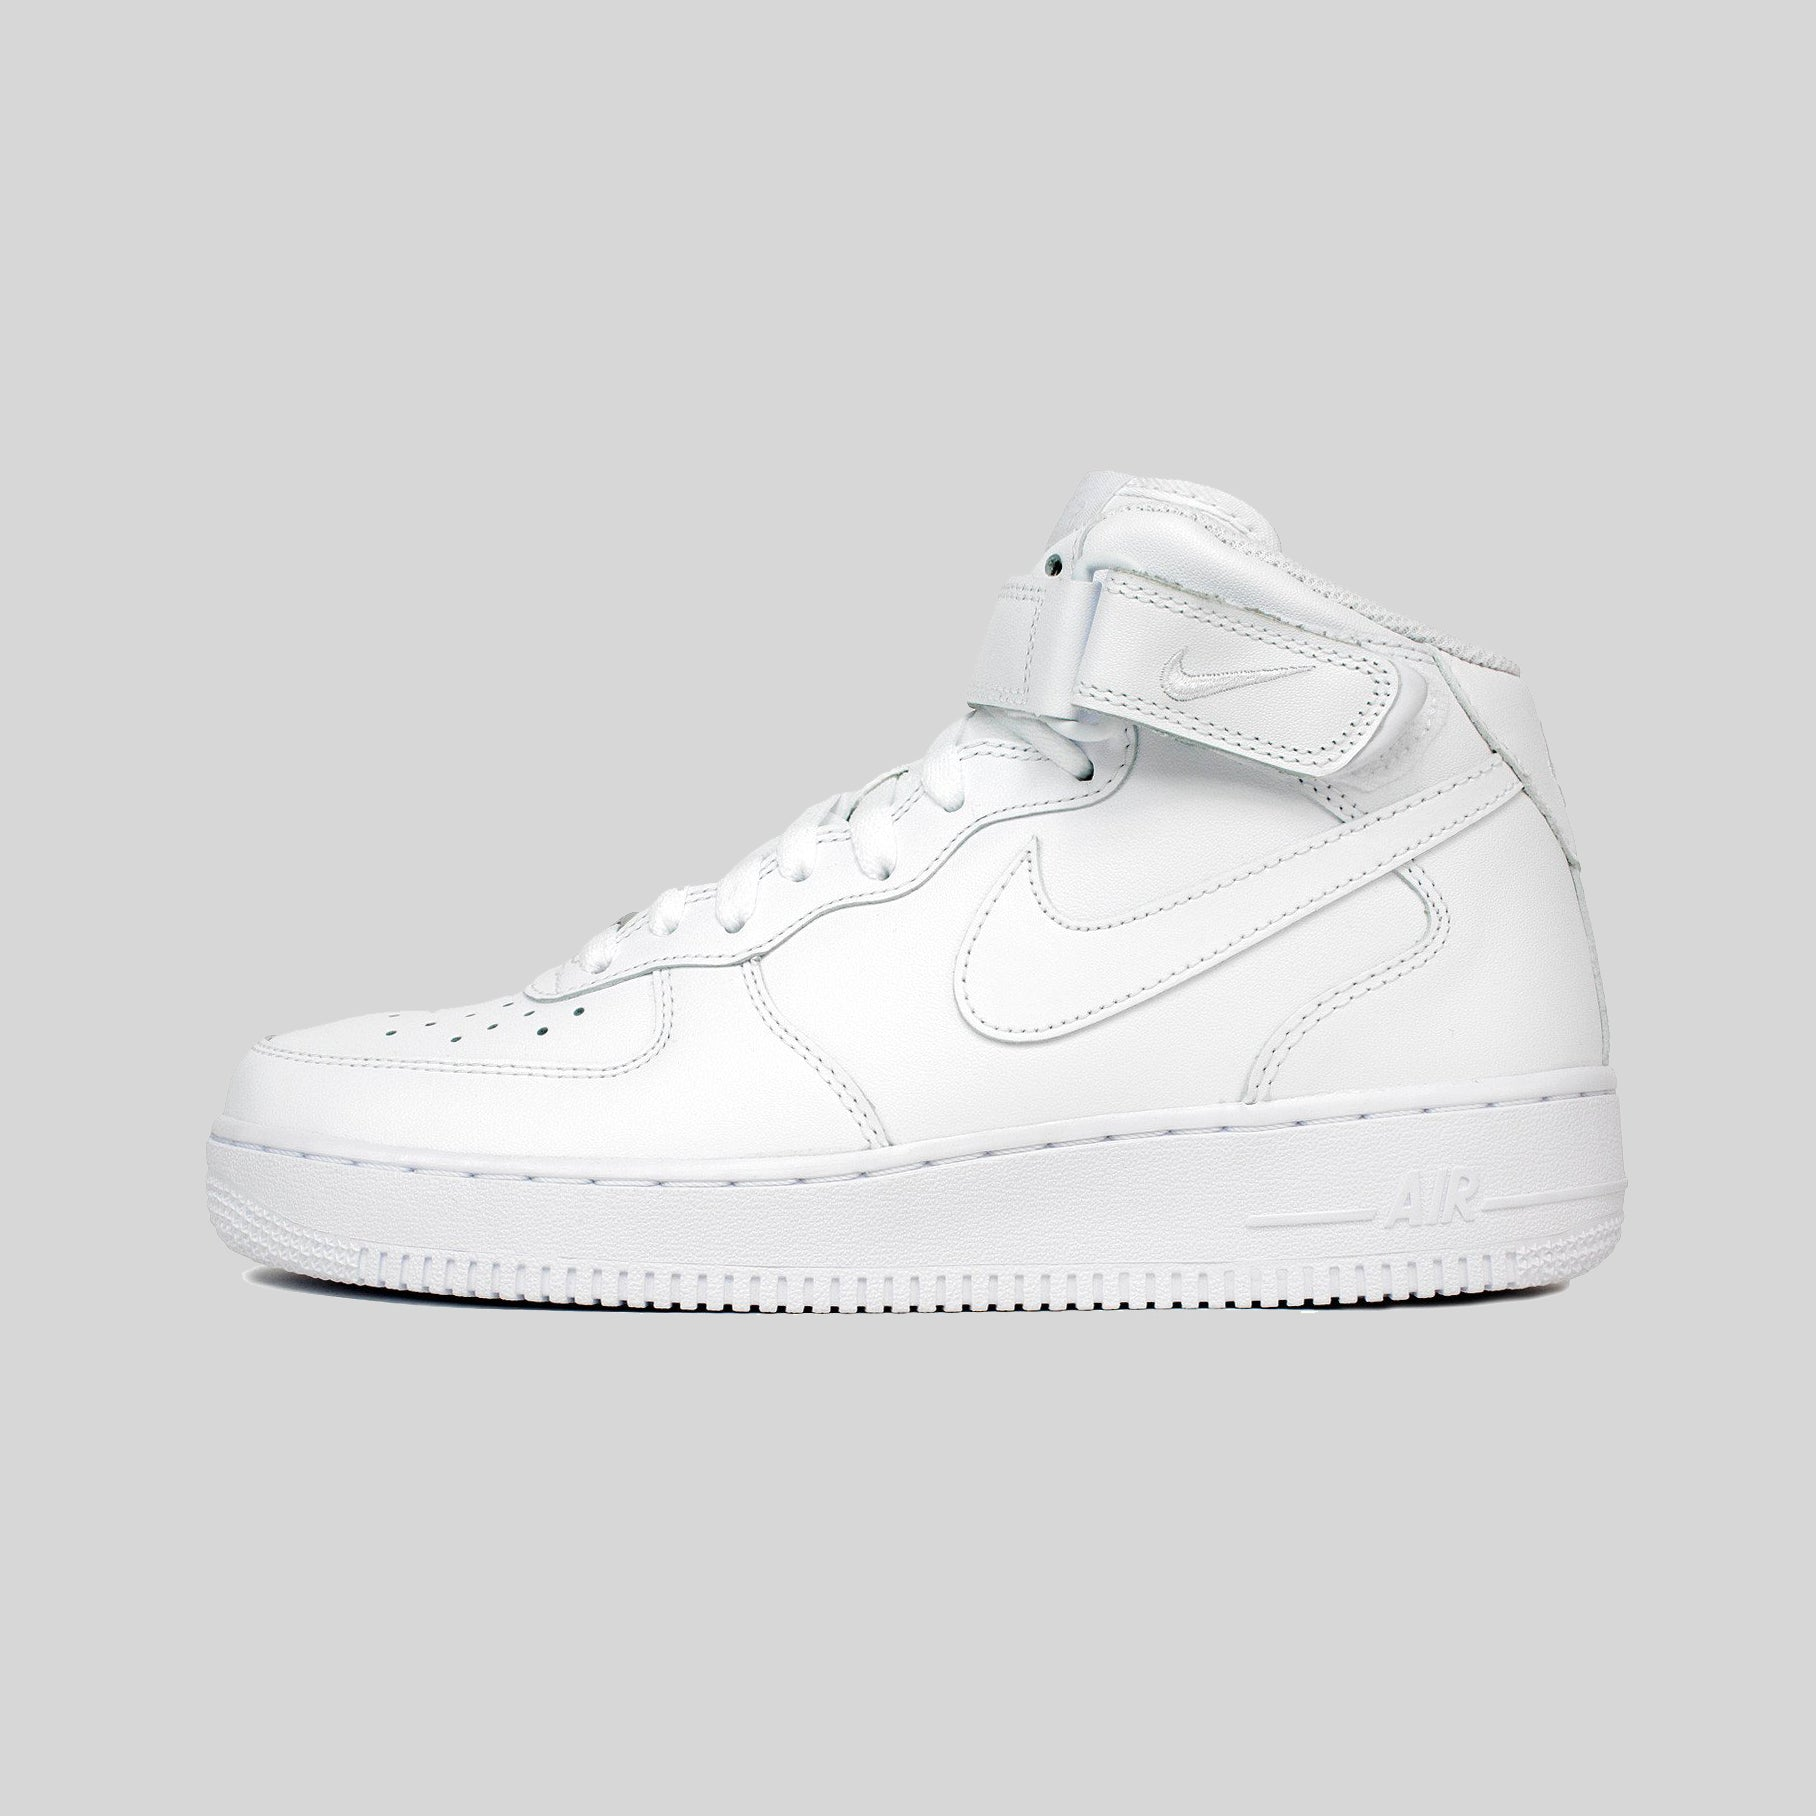 Nike AIR FORCE 1 MID  07 ALL WHITE LEATHER (315123-111)  a5e20bda07